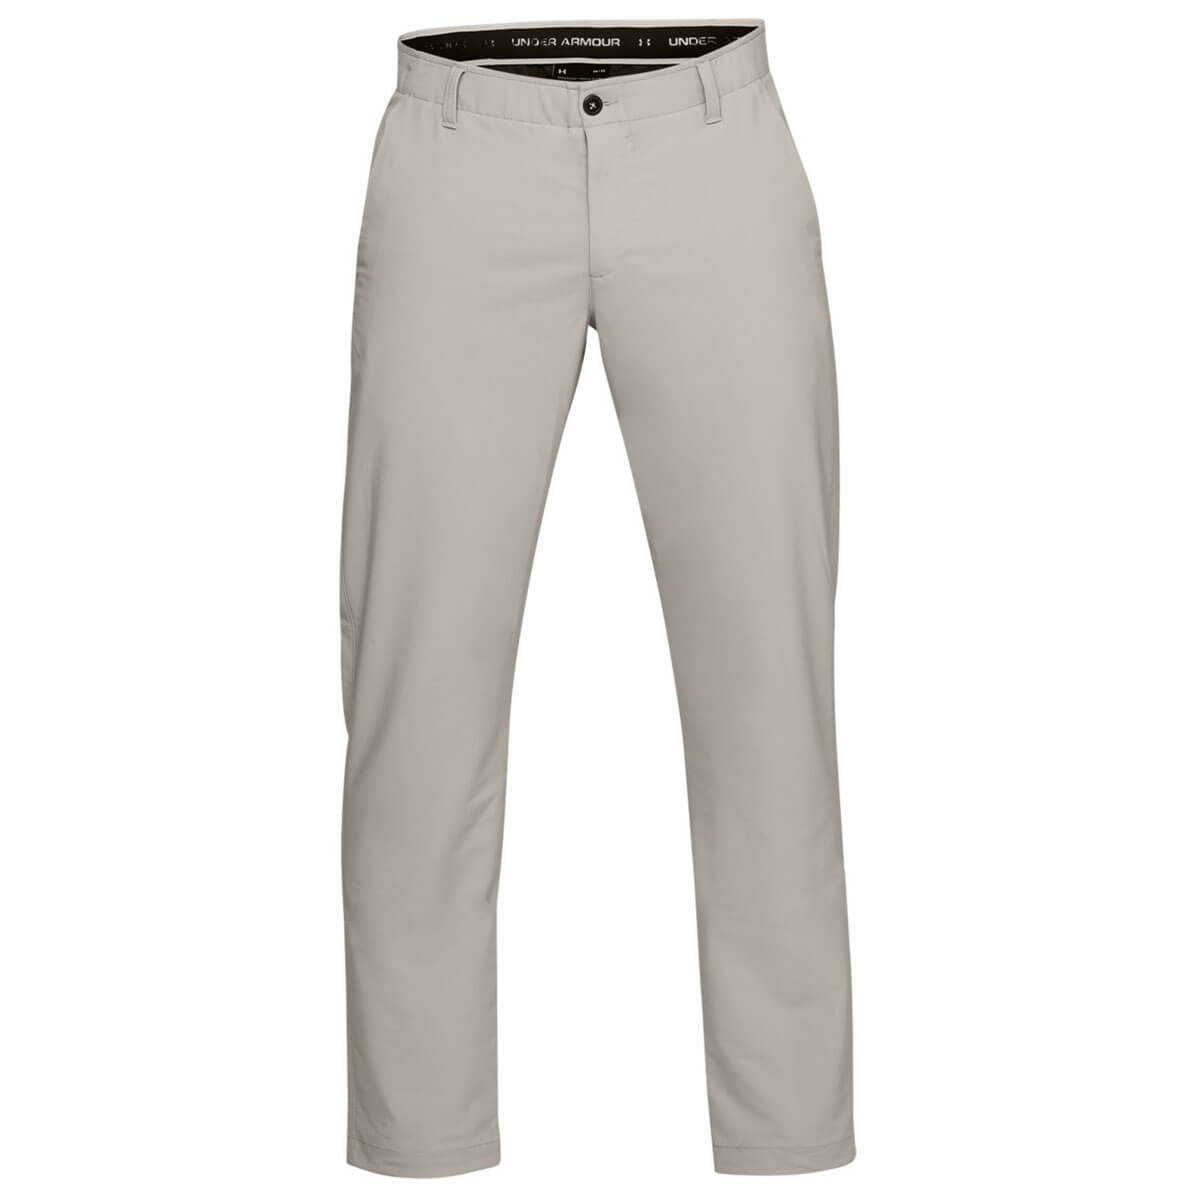 Under-Armour-Mens-2019-EU-Performance-Slim-Taper-Soft-Stretch-Golf-Trousers thumbnail 12